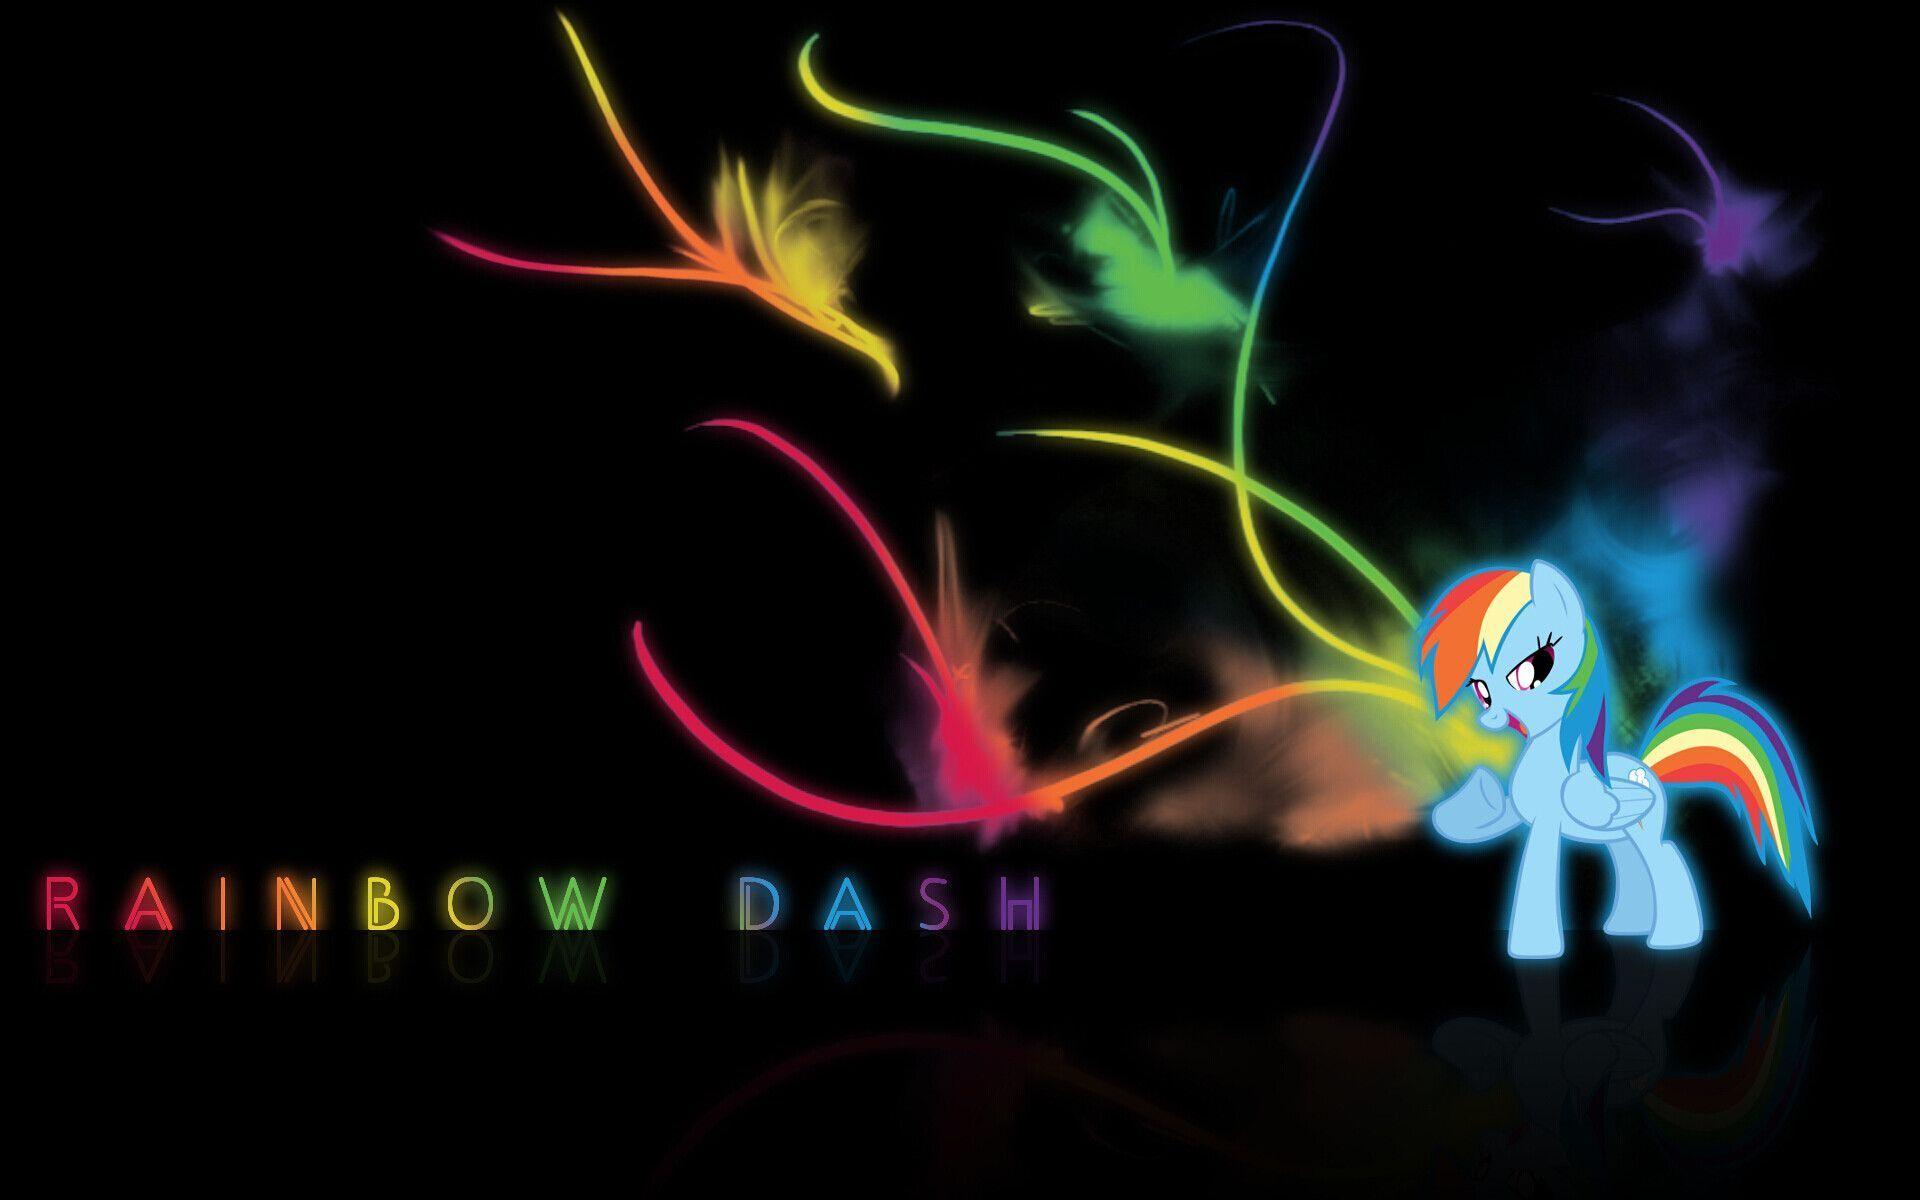 Rainbow Dash Backgrounds - Wallpaper Cave